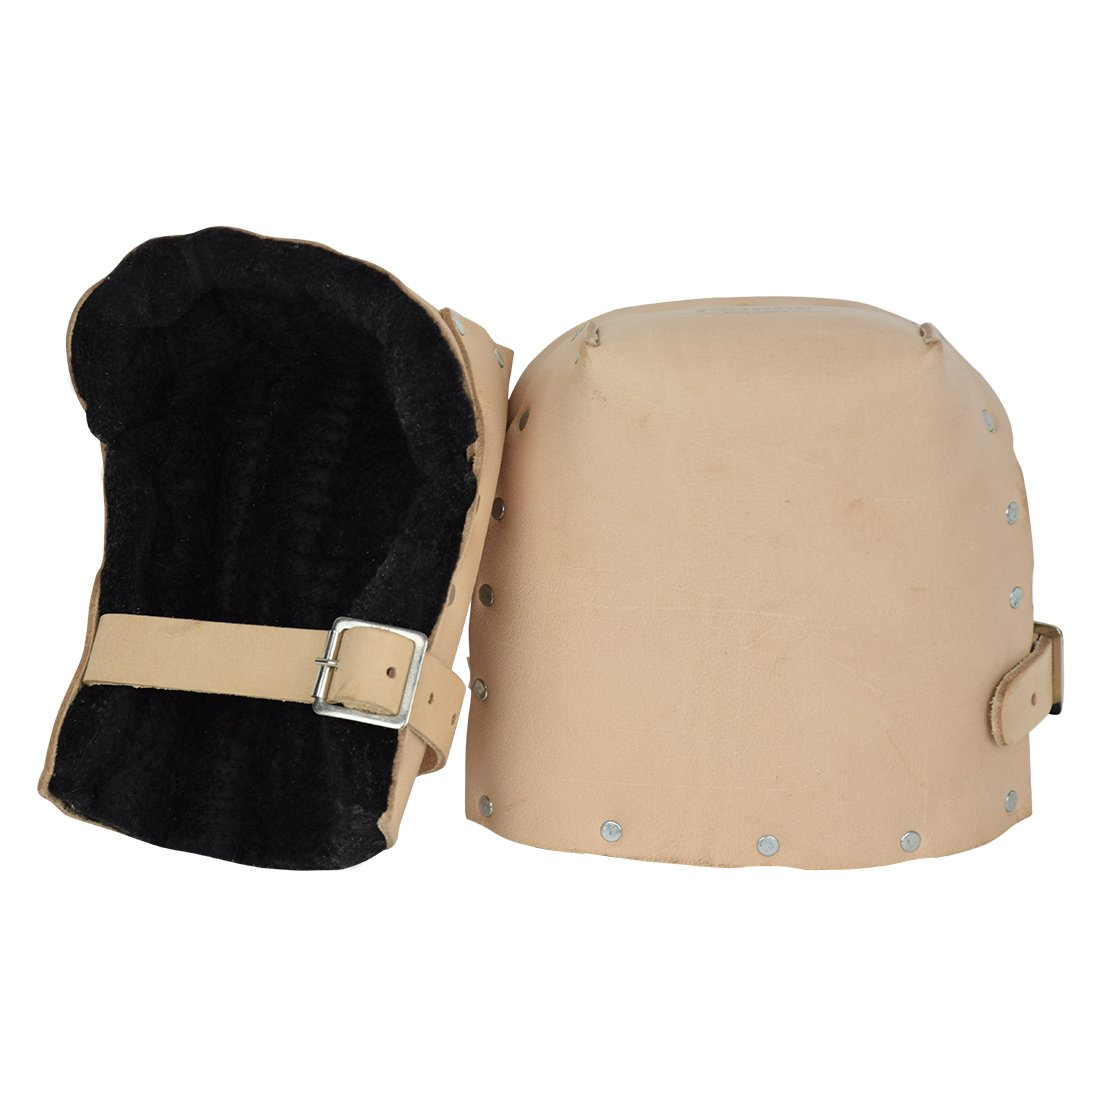 Prince P-309B Heavy Duty Top Grain Leather Kneepads with Thick Felt Lining for Construction by Prince (Image #2)